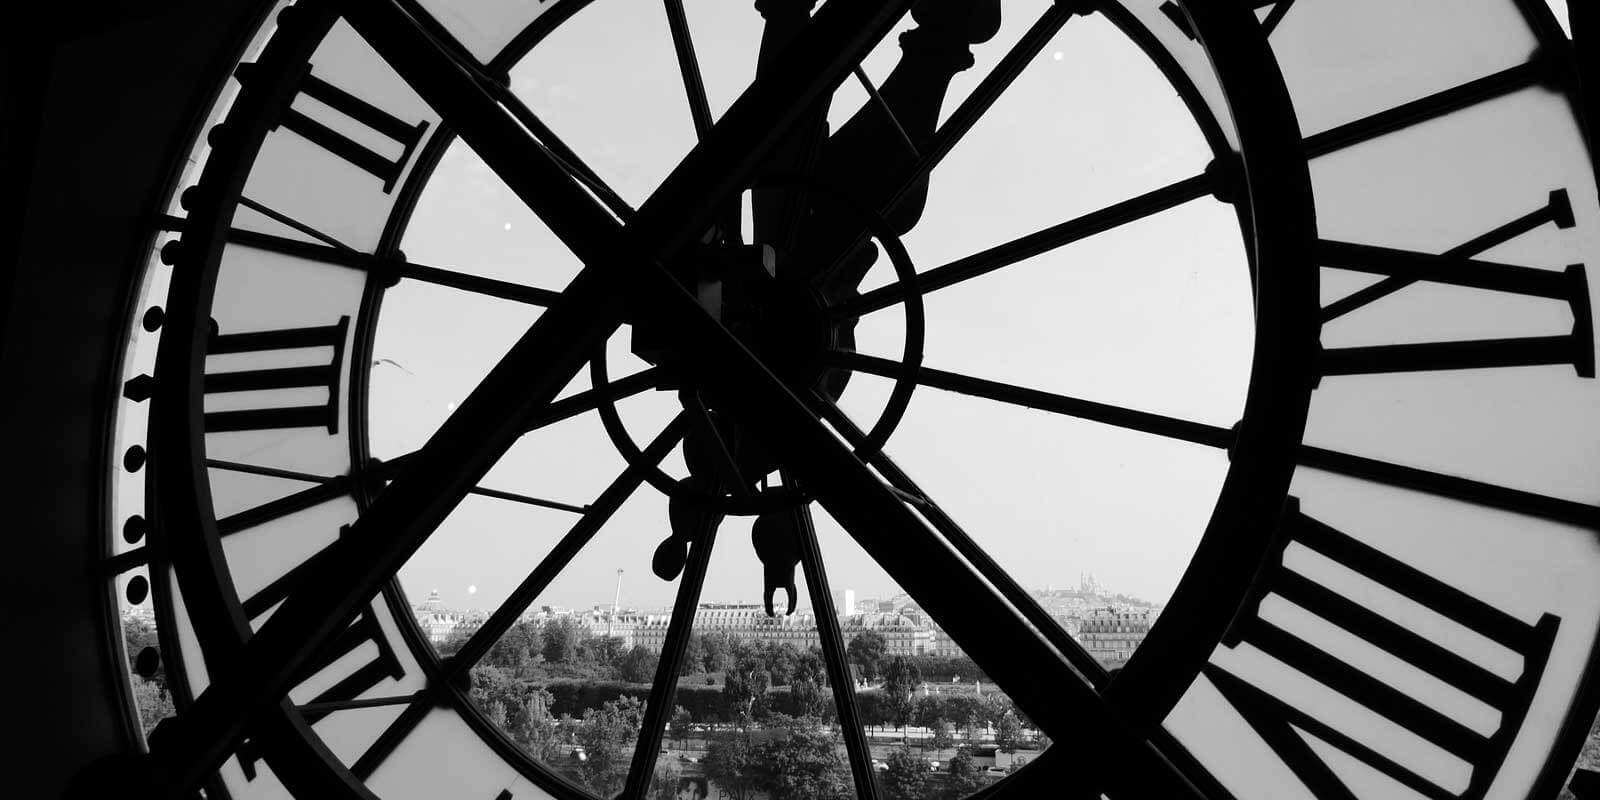 Closeup of the giant clock-slash-window from inside Musée d'Orsay in Paris, France.